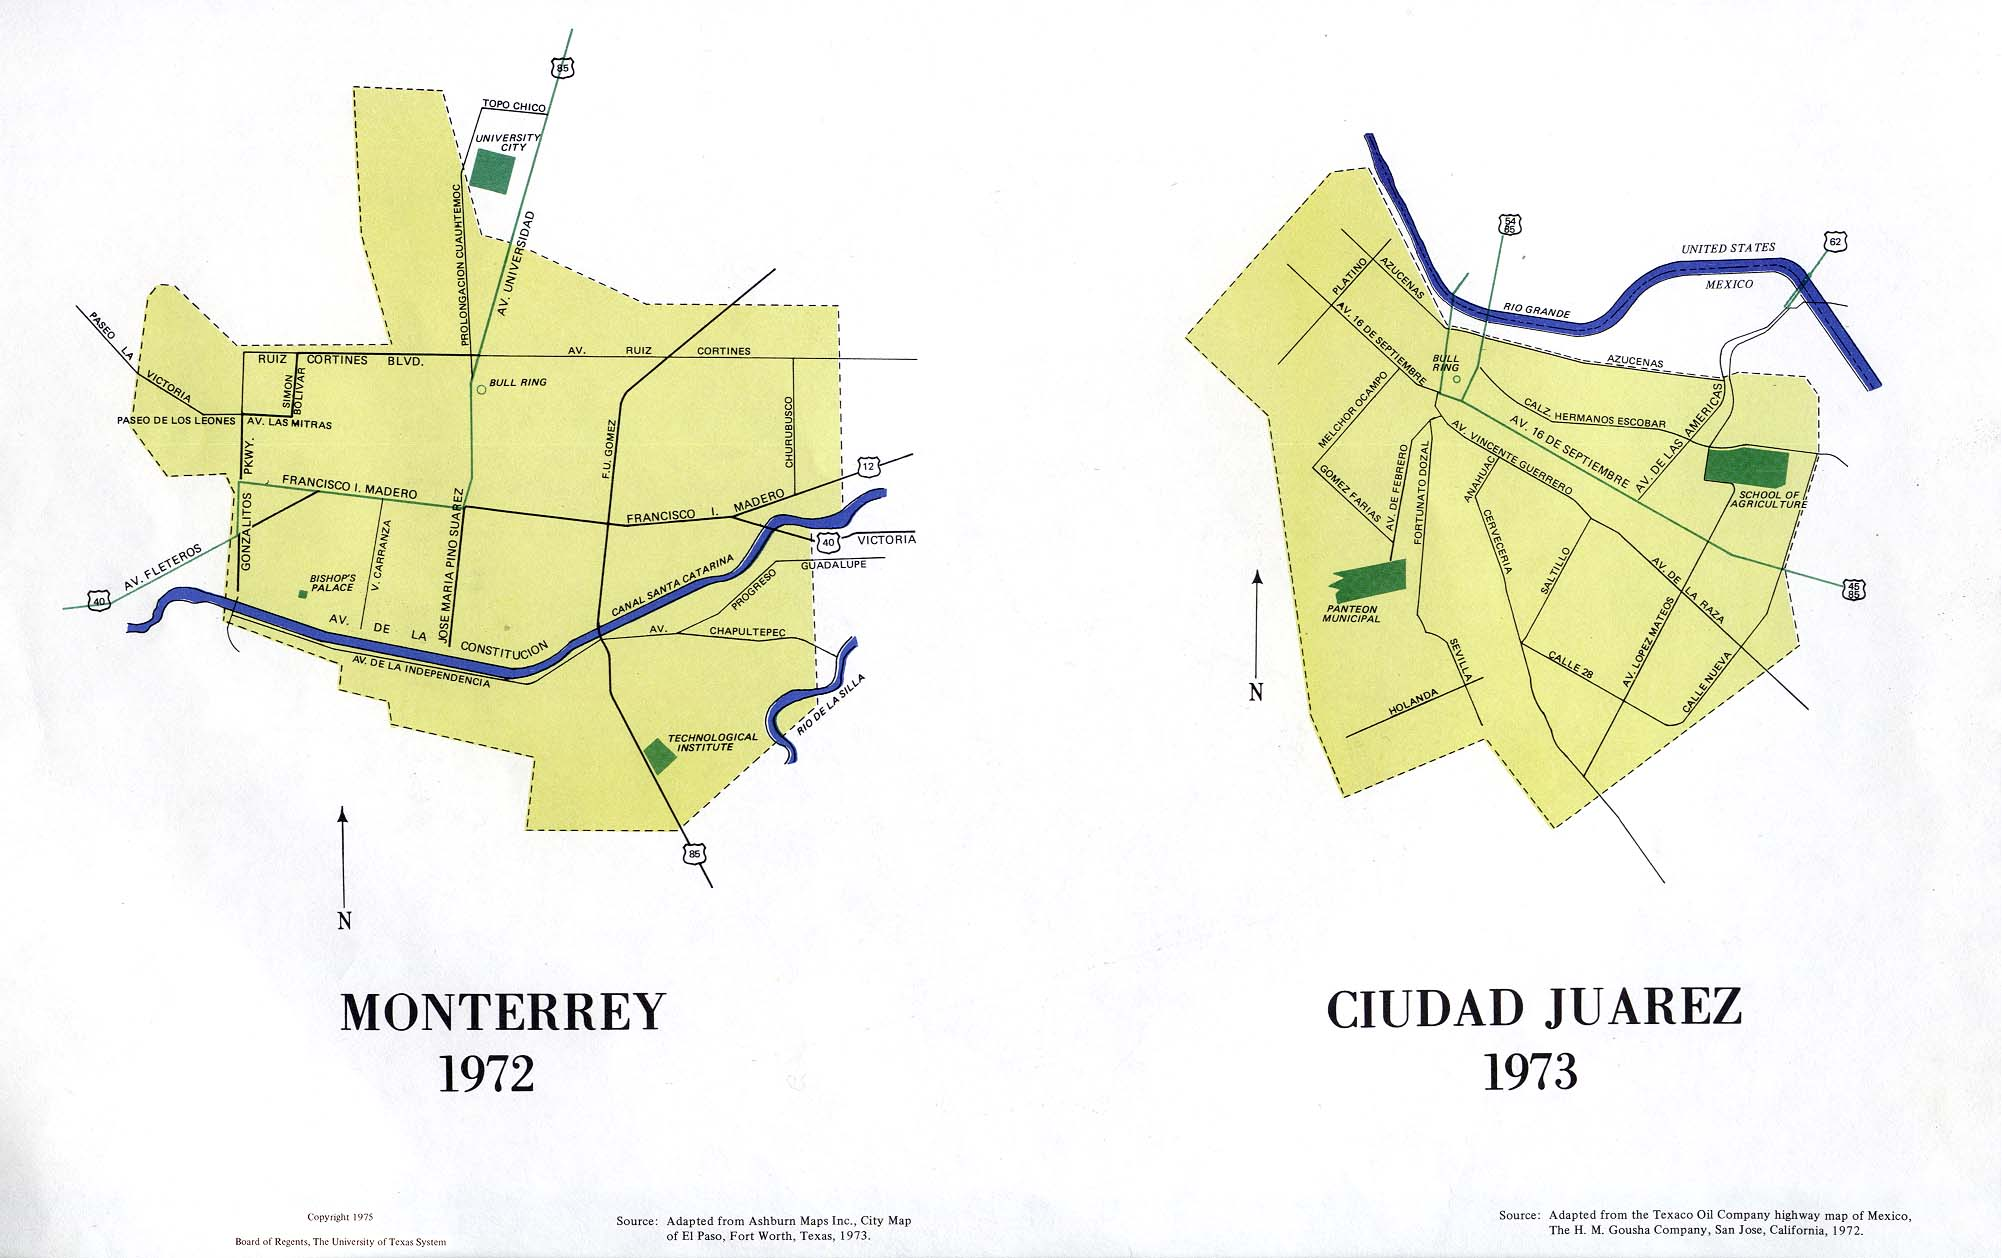 Maps of Monterrey and Ciudad Juarez, Mexico